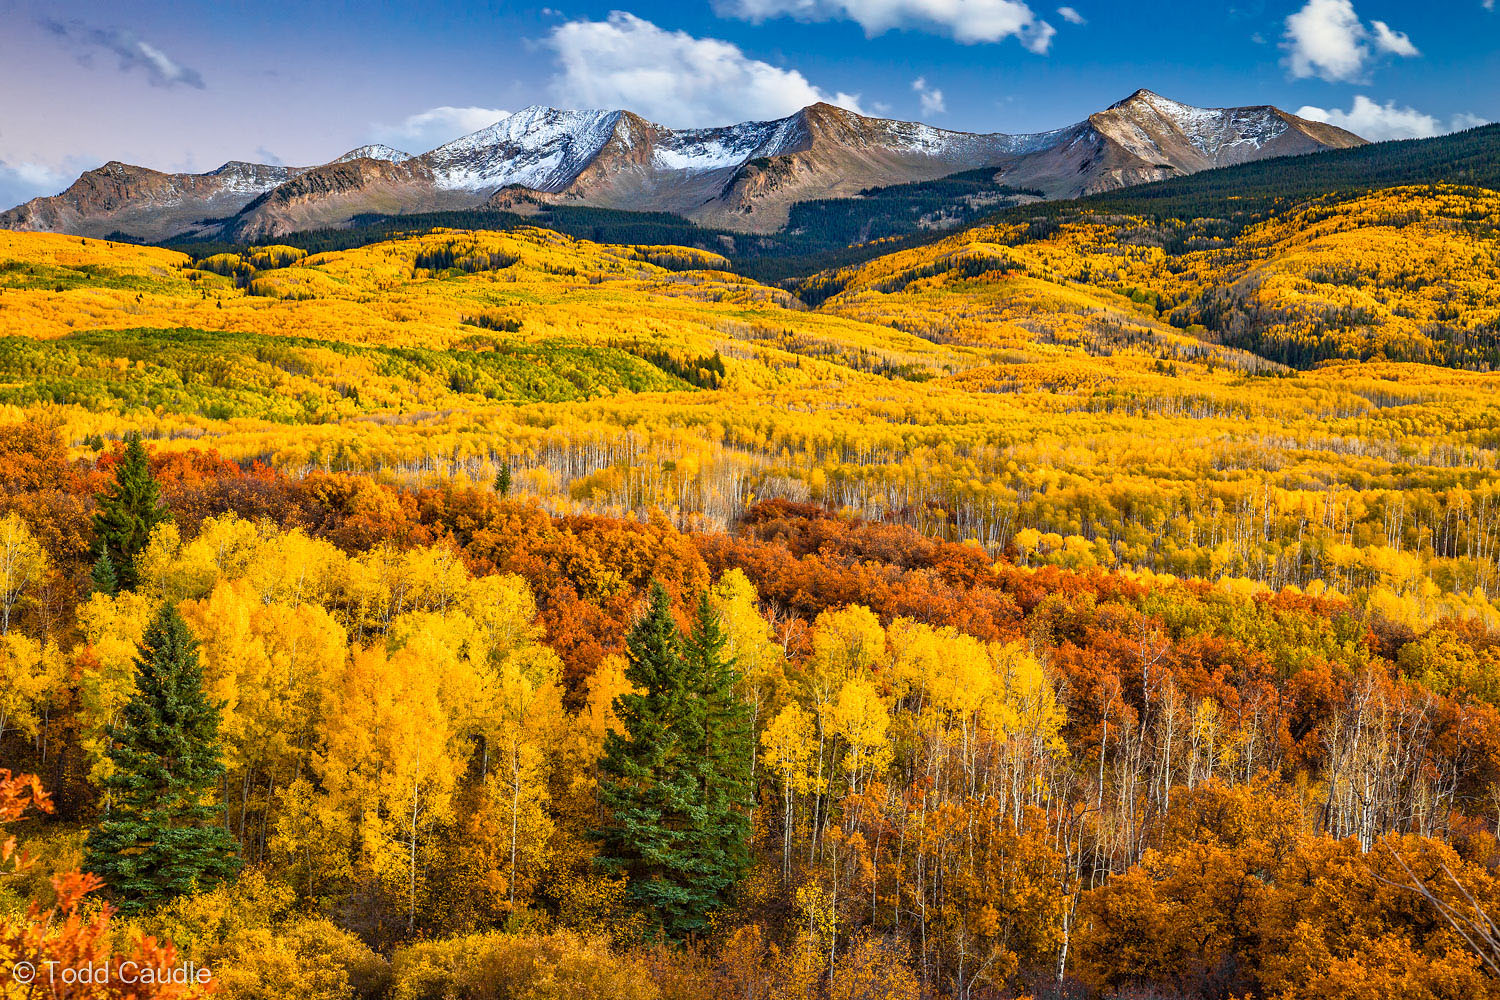 The most extensive aspen forests in Colorado flank the Kebler Pass road that connects the town of Crested Butte with the West...